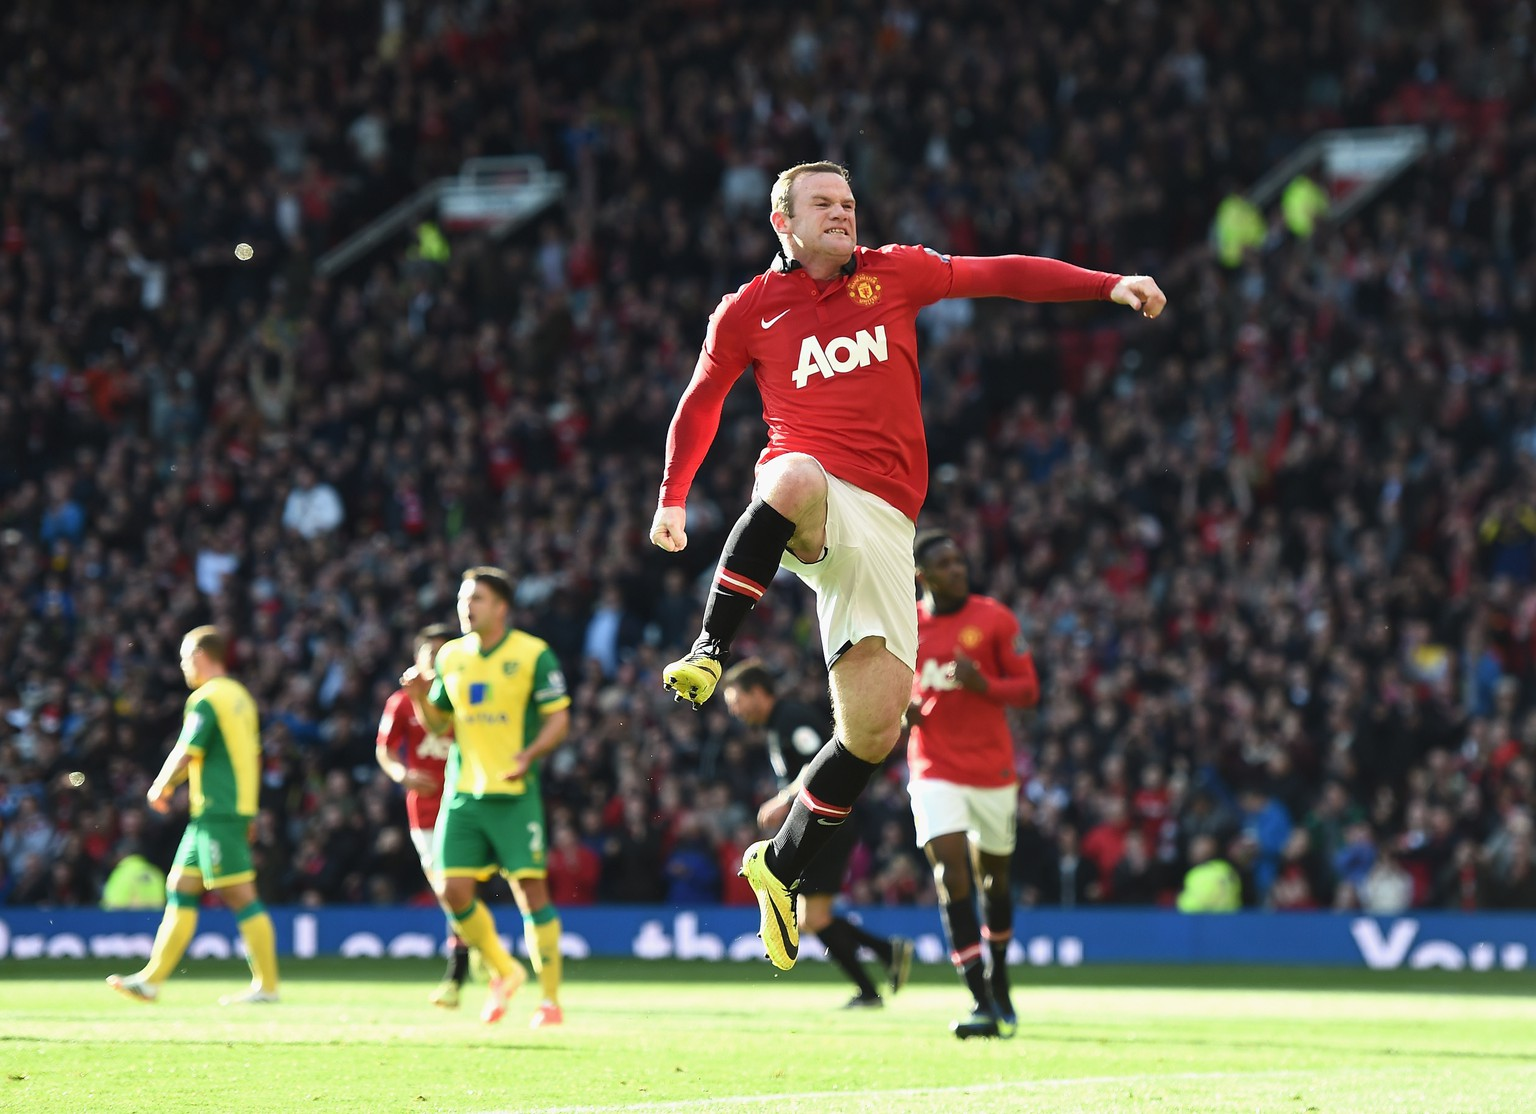 MANCHESTER, ENGLAND - APRIL 26: Wayne Rooney of Manchester United celebrates his first half penalty during the Barclays Premier League match between Manchester United and Norwich City at Old Trafford on April 26, 2014 in Manchester, England.  (Photo by Laurence Griffiths/Getty Images)